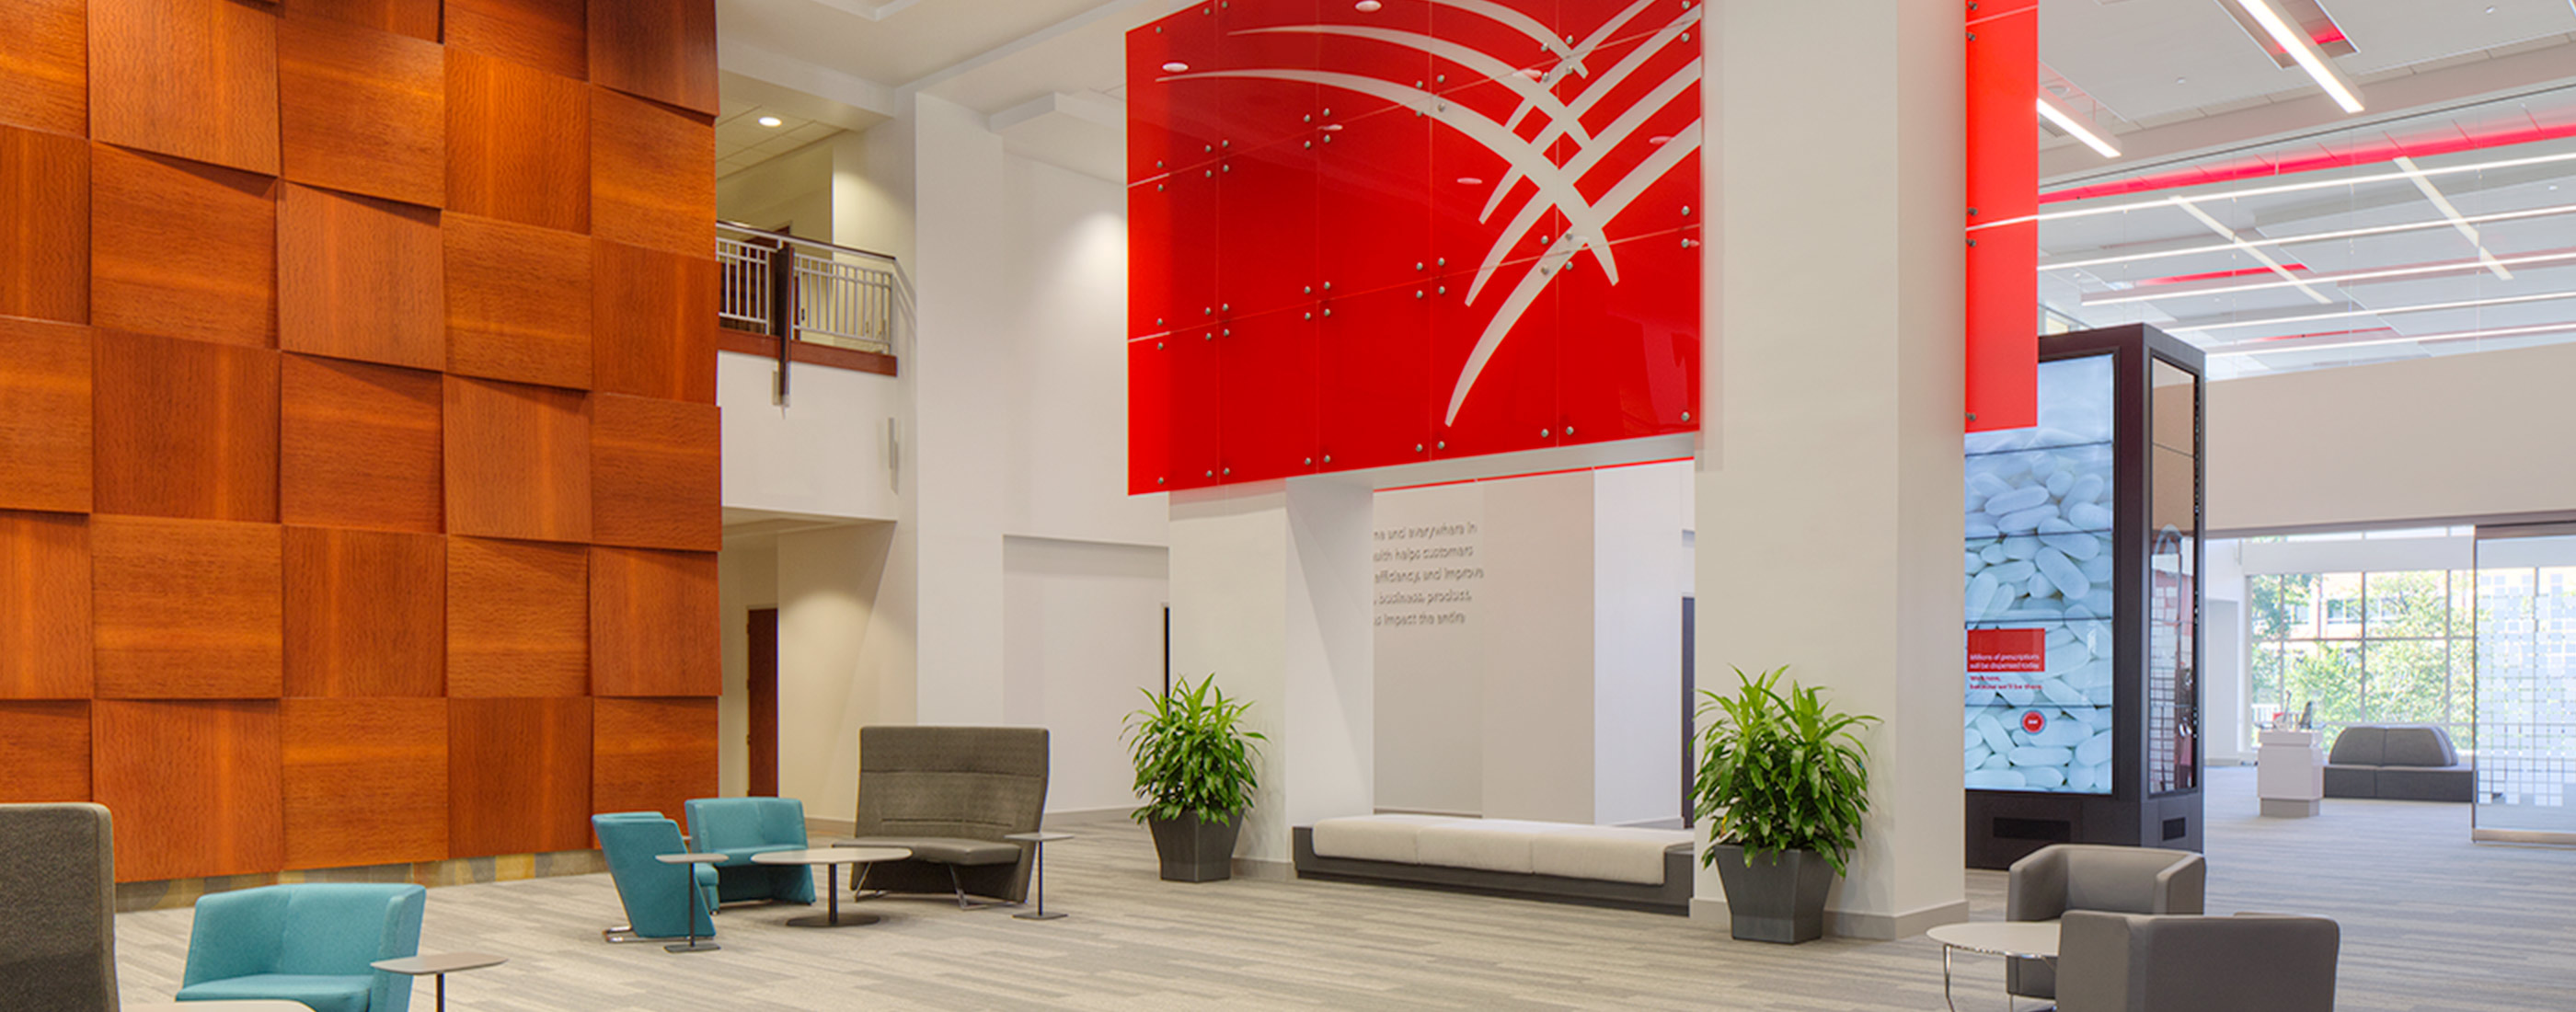 The bright, airy and open lobby at Cardinal Health's headquarters, helps engage employees and visitors alike.